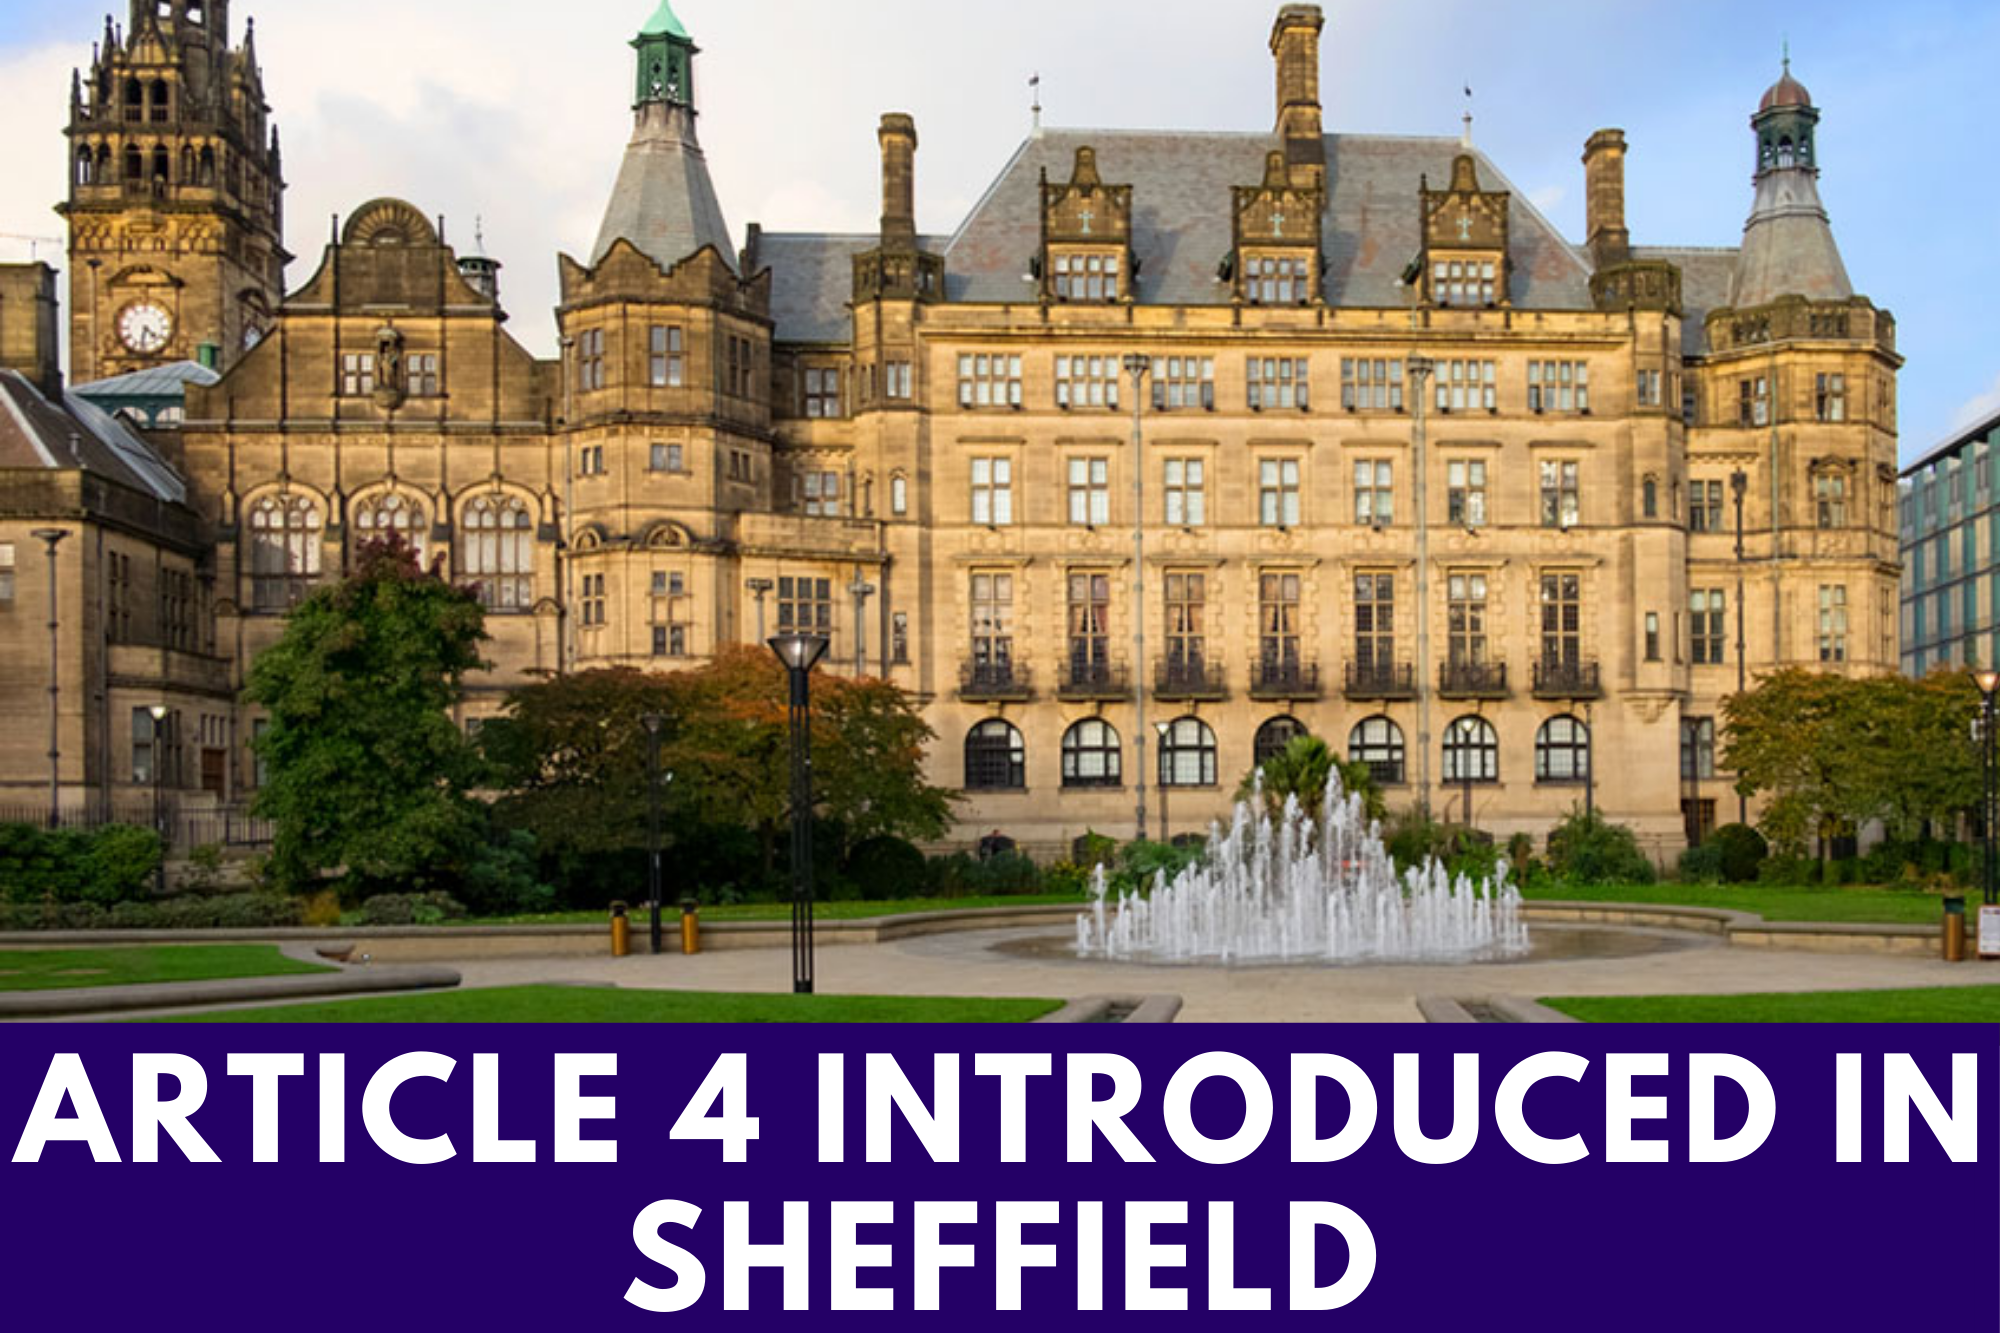 Article 4 Introduced In Sheffield